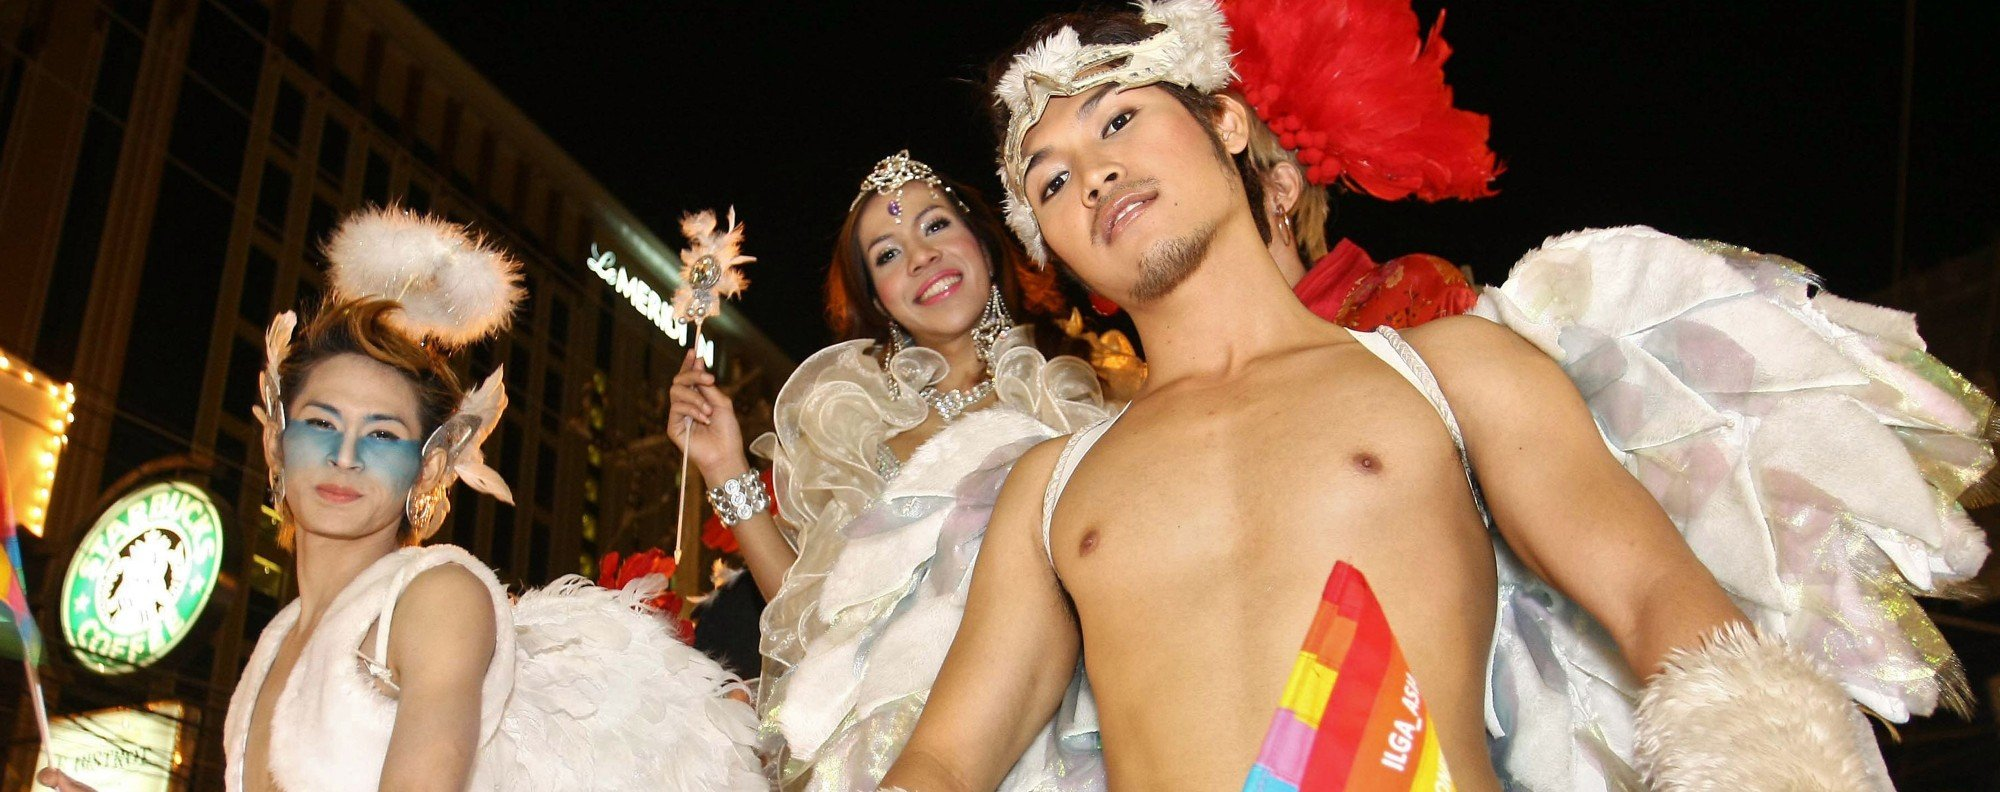 A gay pride event in Chiang Mai. Photo: AFP